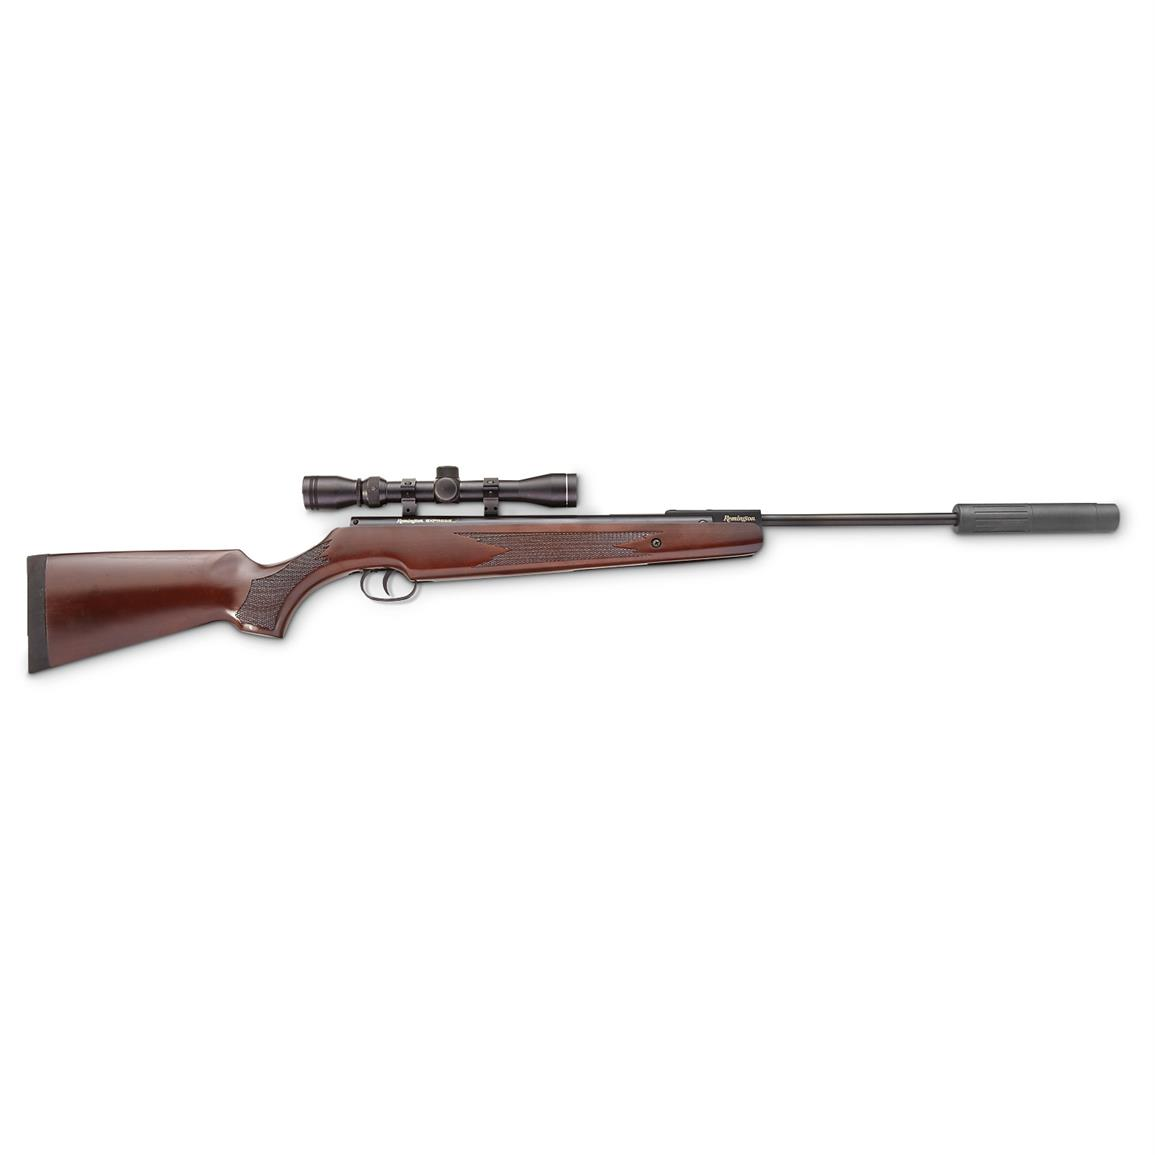 Remington Express XP Air Rifle with 3-9x32mm Scope, .177 caliber, Break Barrel, 1 Round